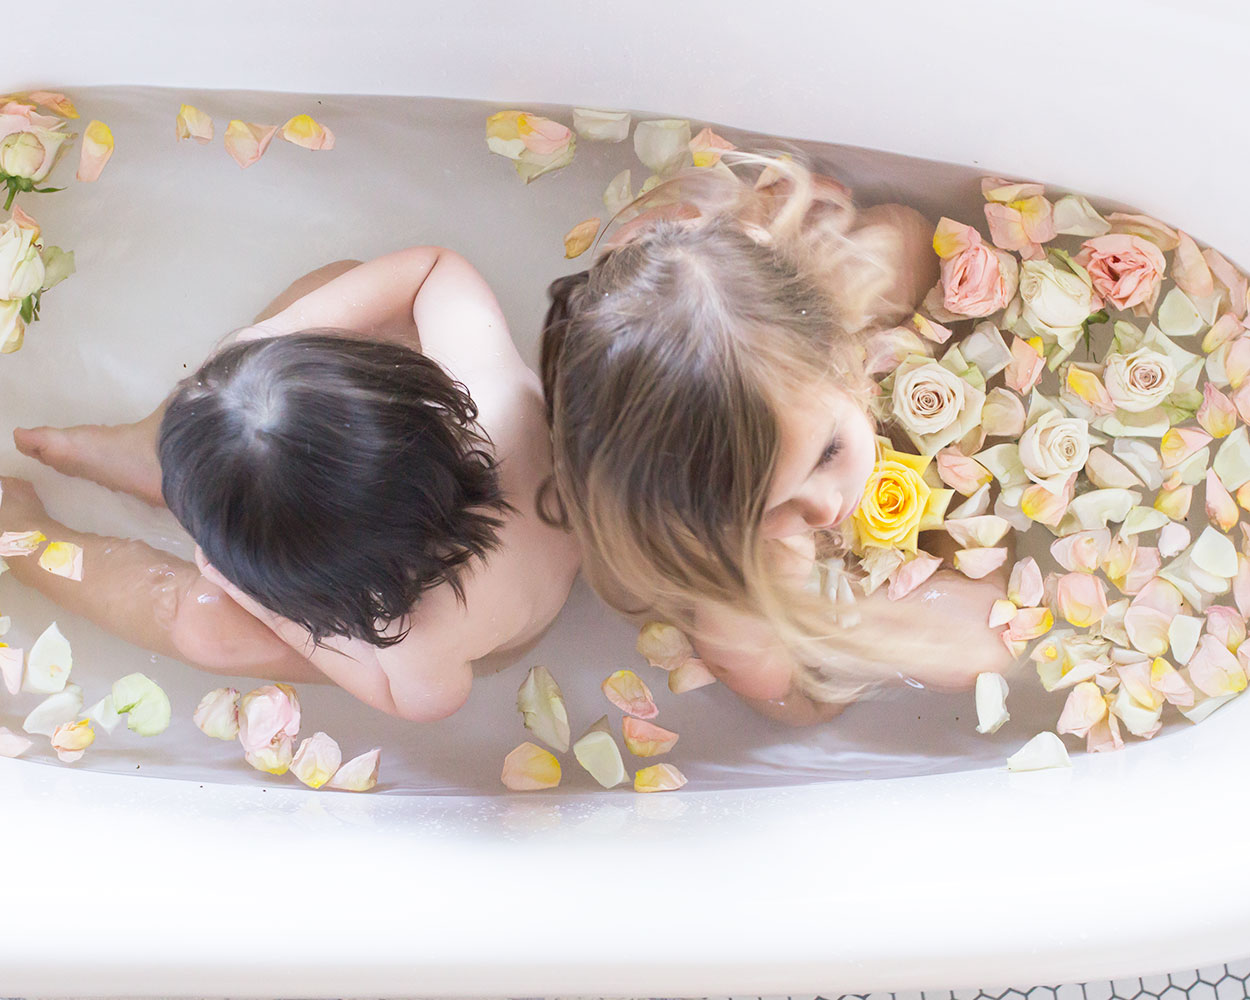 love these two in my bathtub, especially when flowers are involved! | thelovedesignedife.com #bathtime #flowers #flowerbath